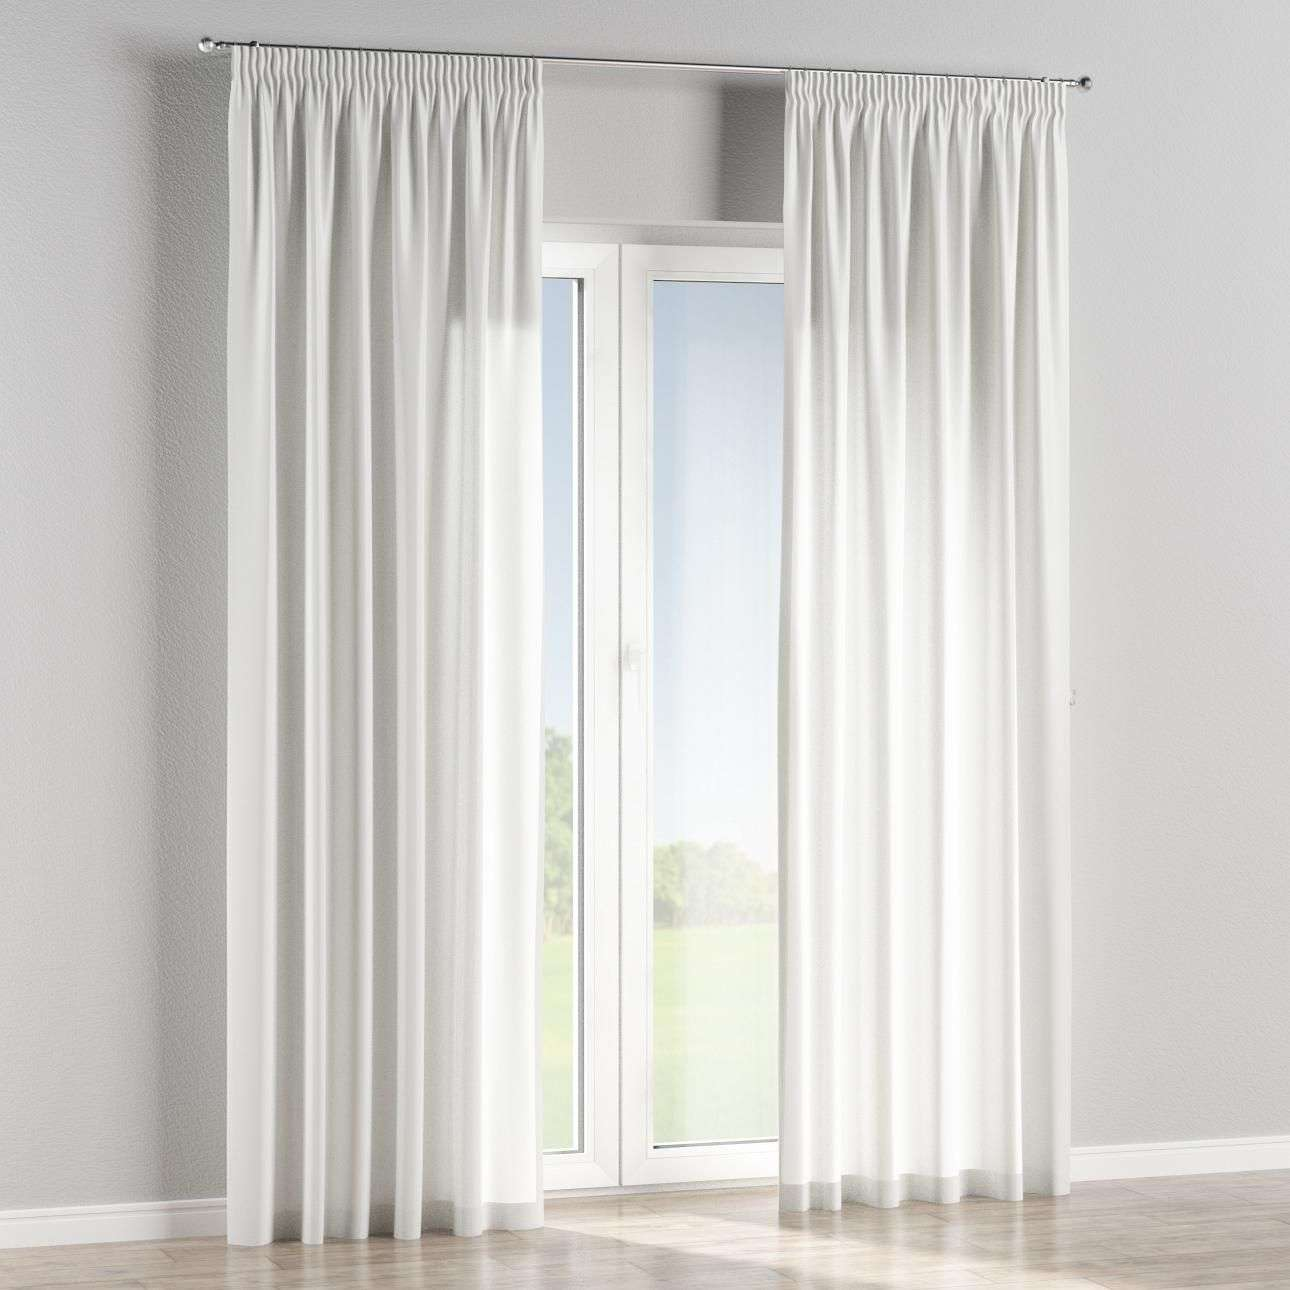 Pencil pleat curtains in collection Christmas , fabric: 630-29